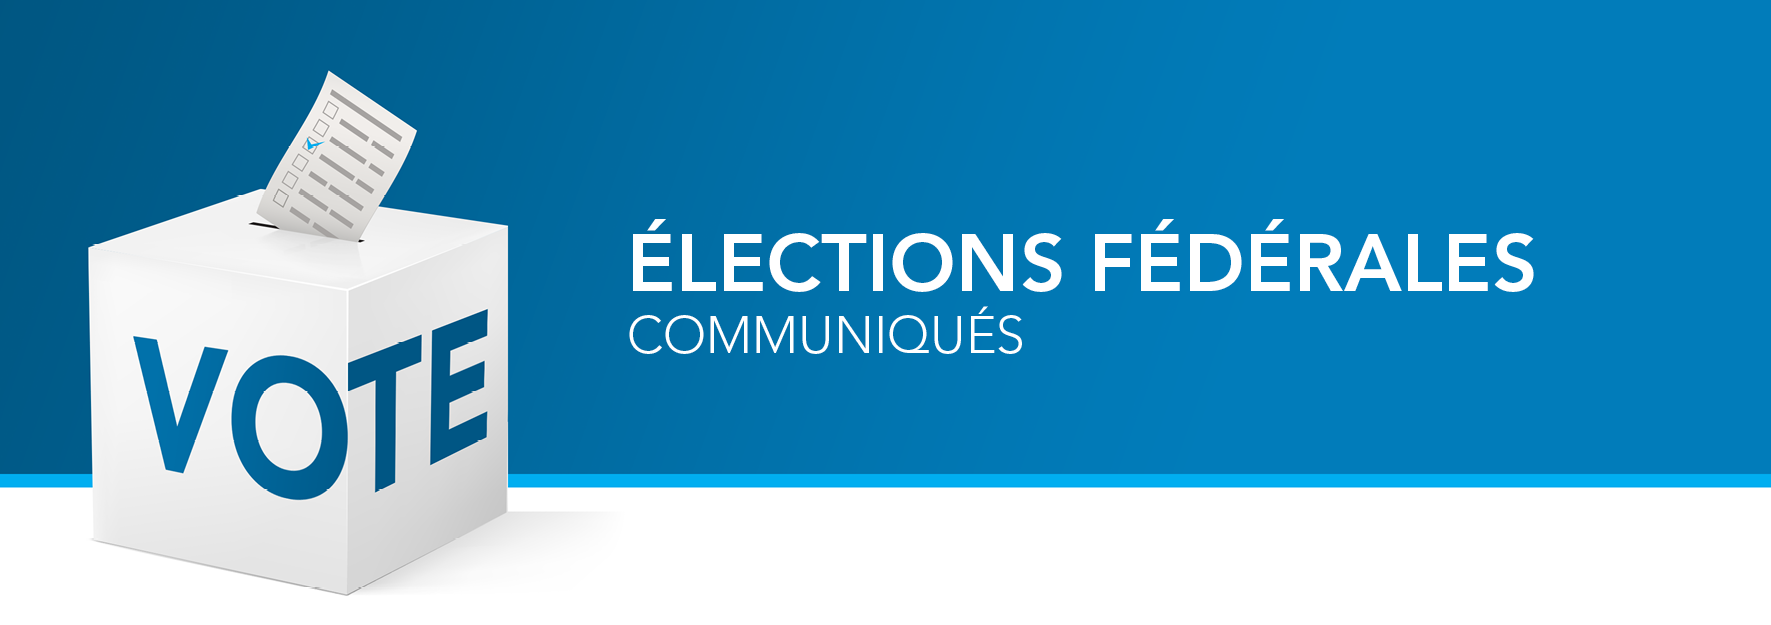 cjso-elections-federales-2019